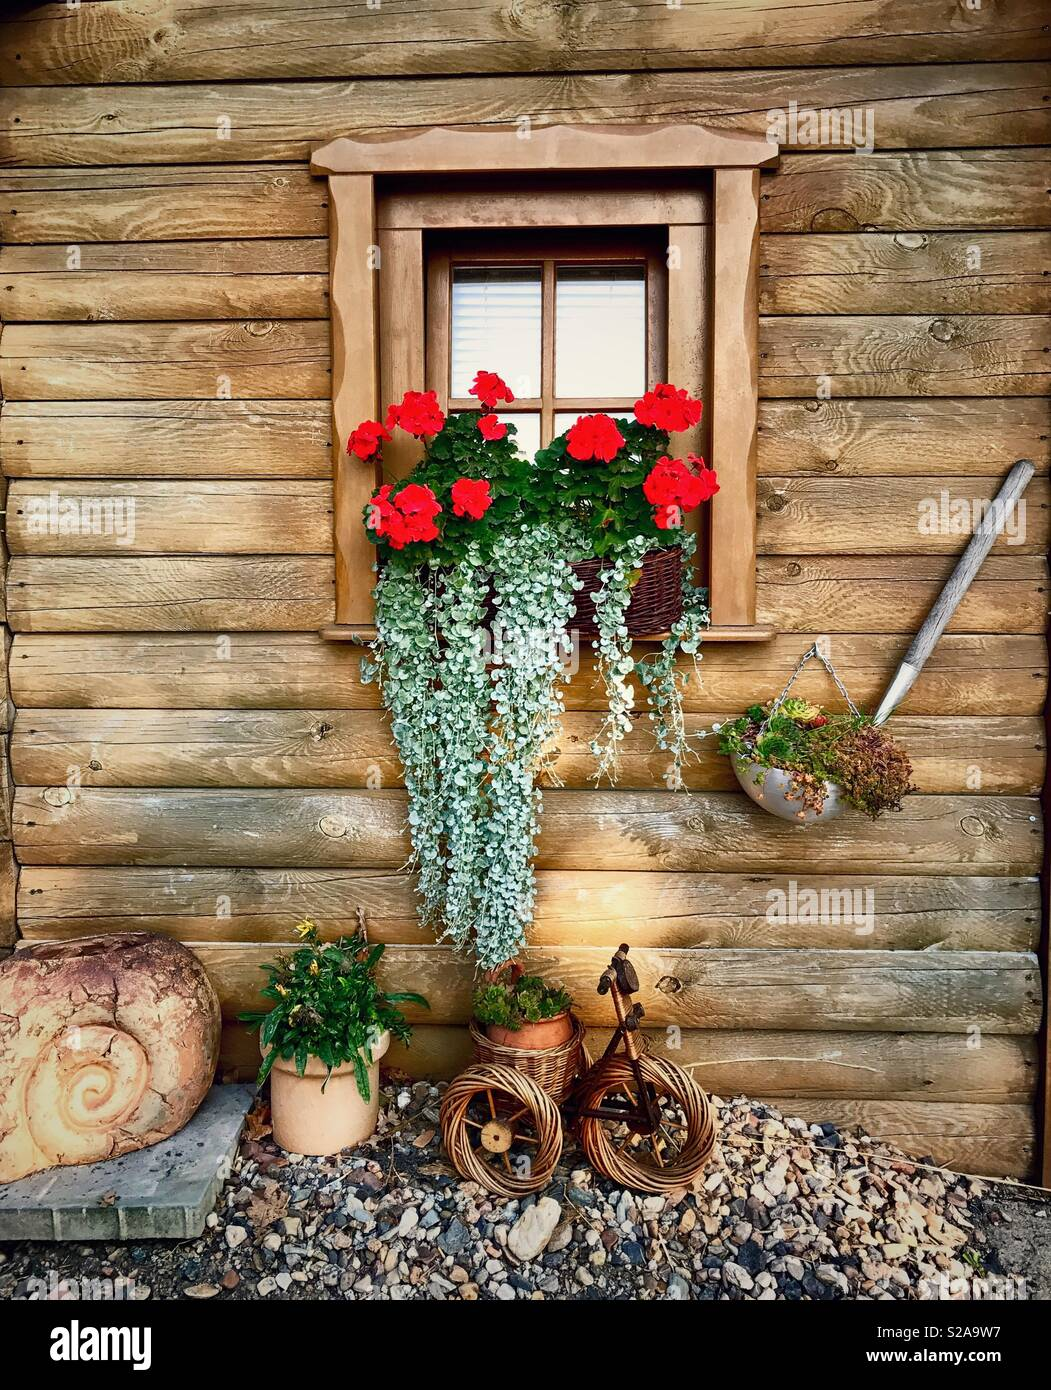 Cute Rustic Exterior Log Cabin Decor With Flower Box On A